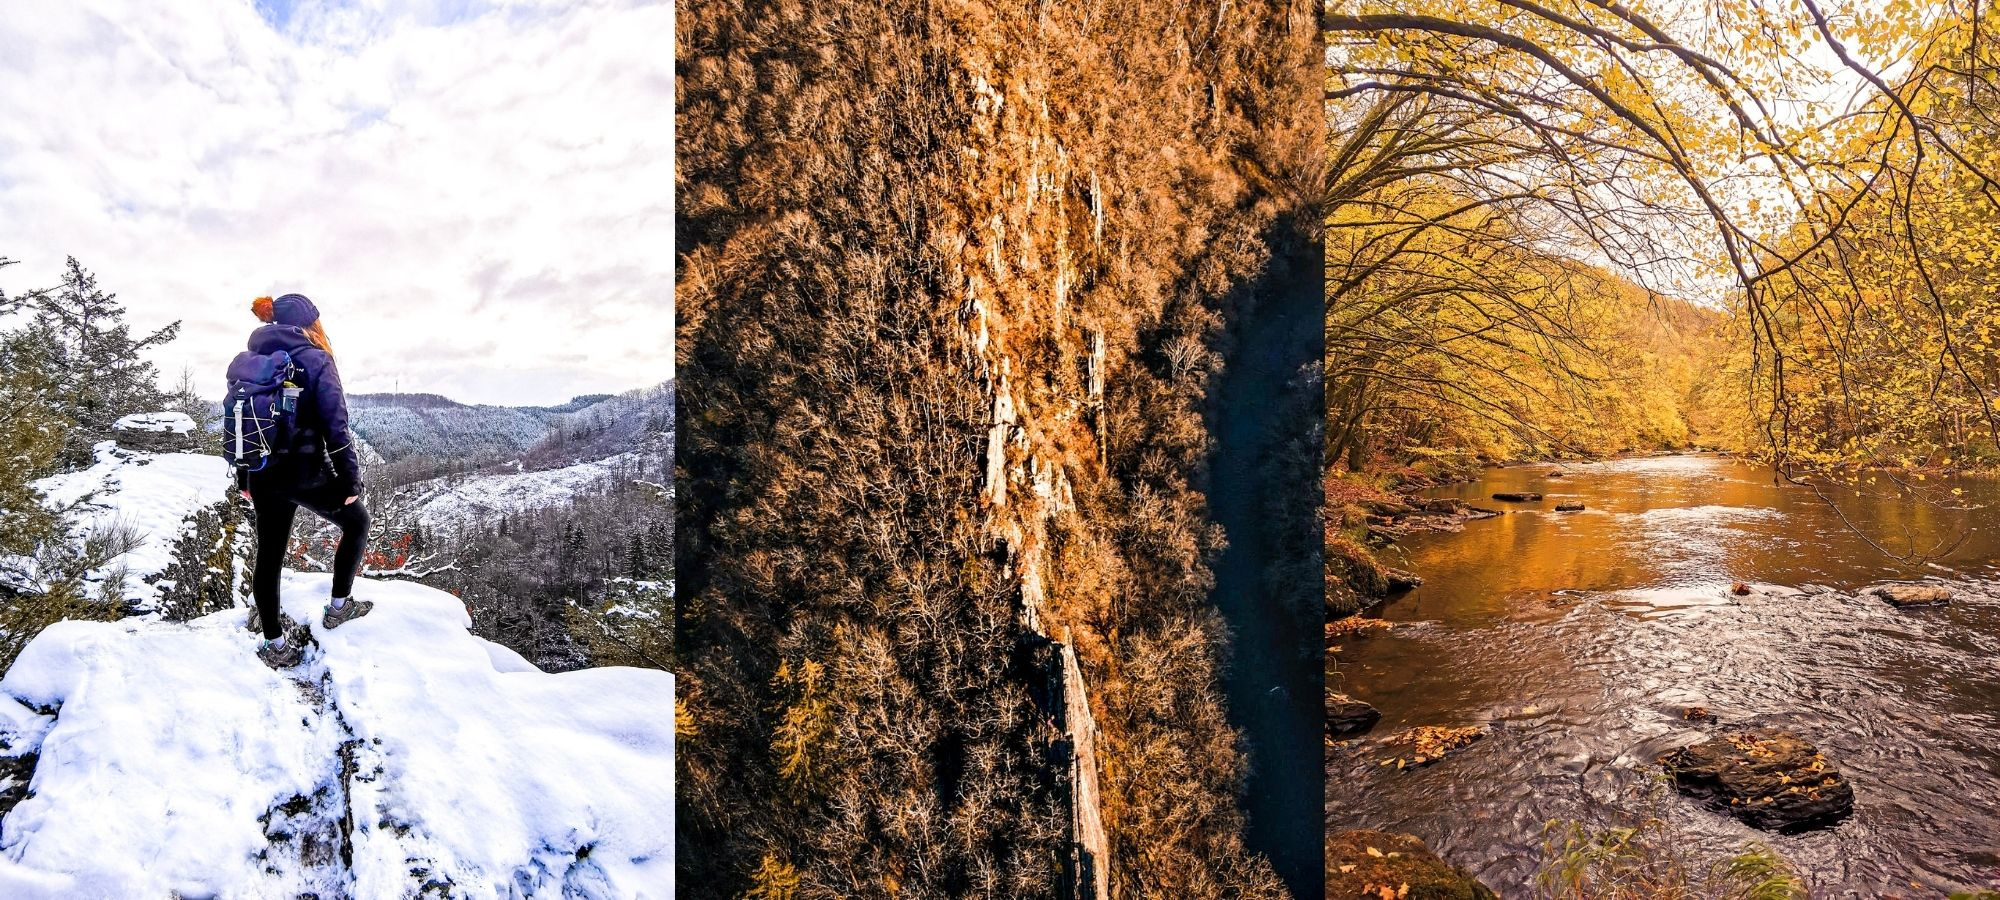 Left: female hiker on a snowy cliff. Middle: looking down into a alley. Right: pond